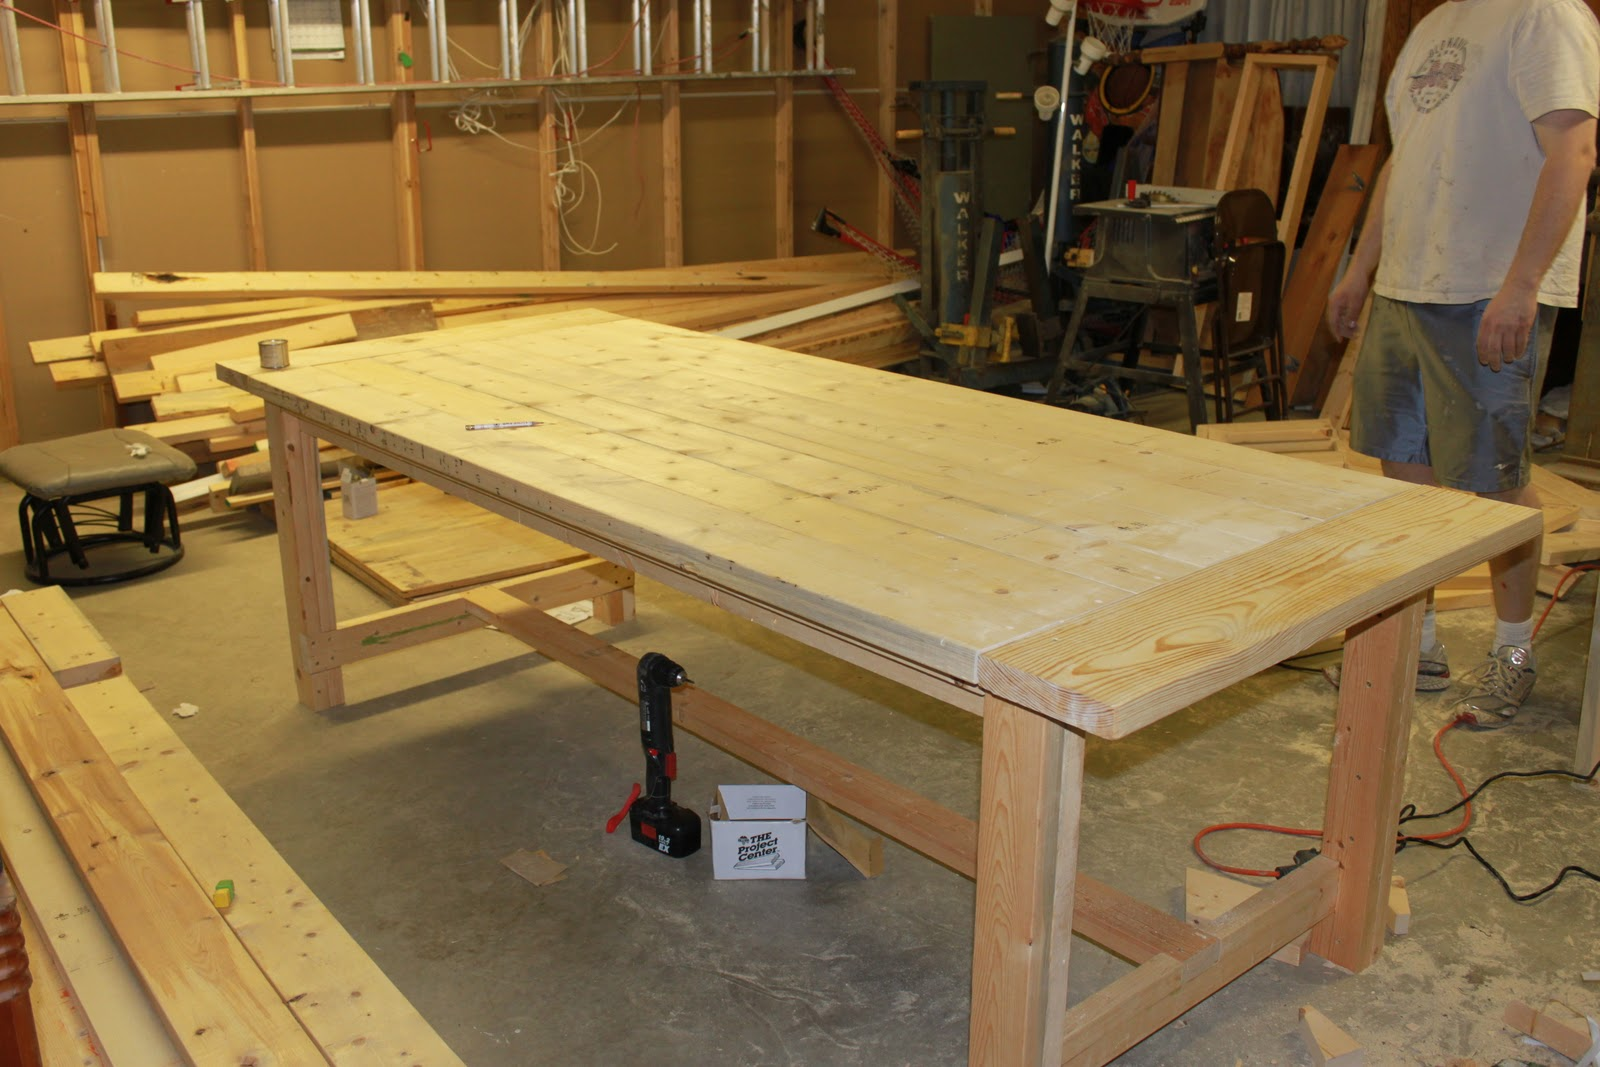 how we built a diy dining room table from free plans online it was easy you should try it - Build Dining Room Table